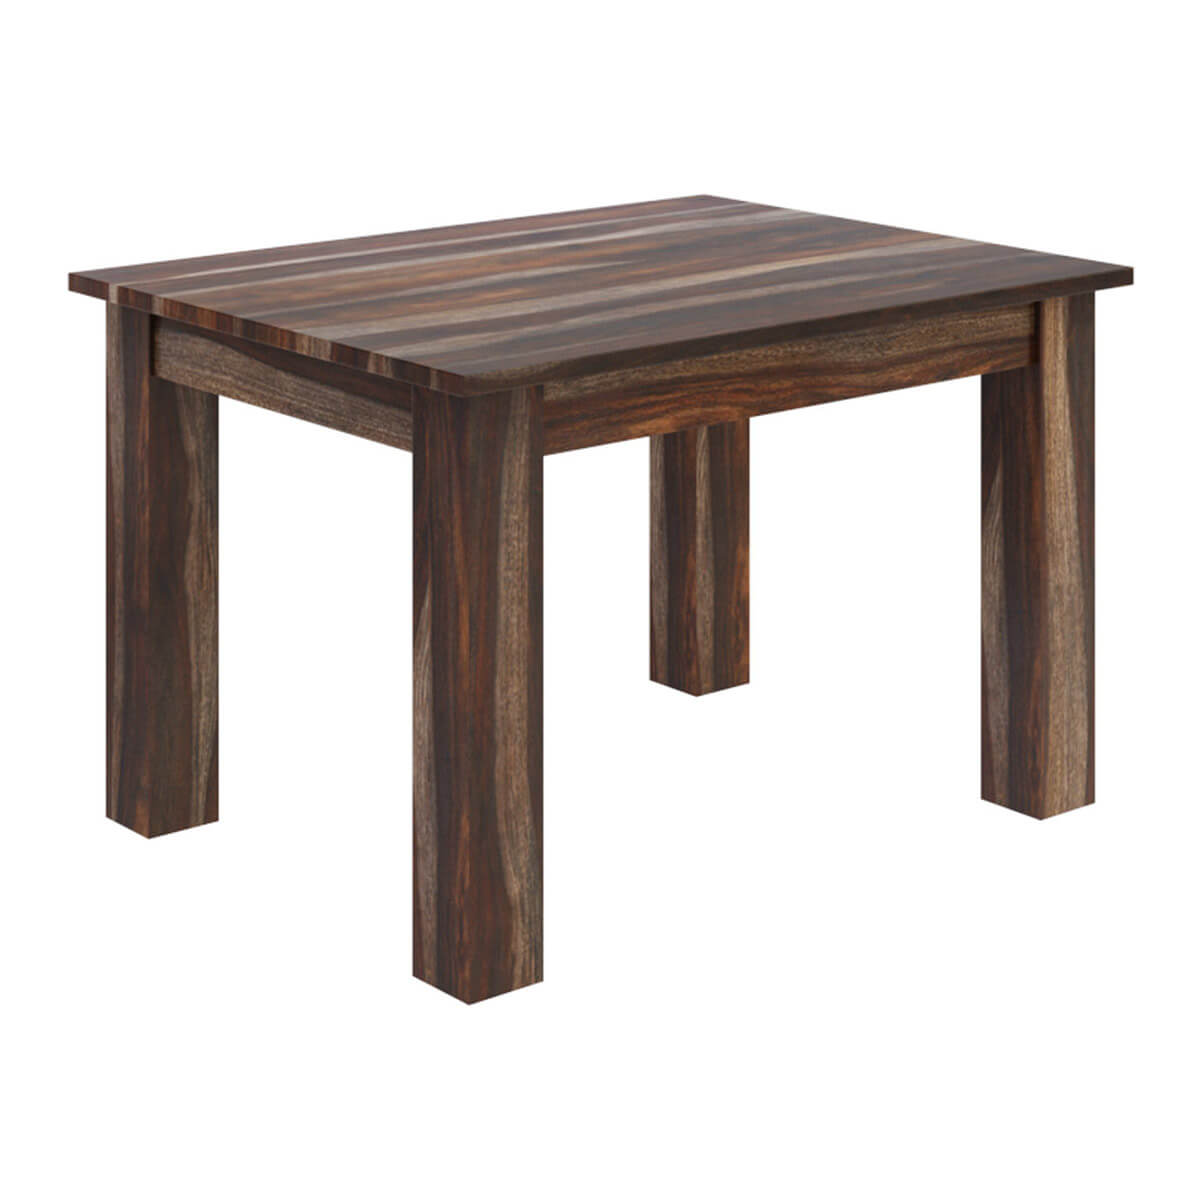 Alabama Modern Rustic Solid Wood Rectangular Dining Table : 8843 from www.sierralivingconcepts.com size 1200 x 1200 jpeg 97kB